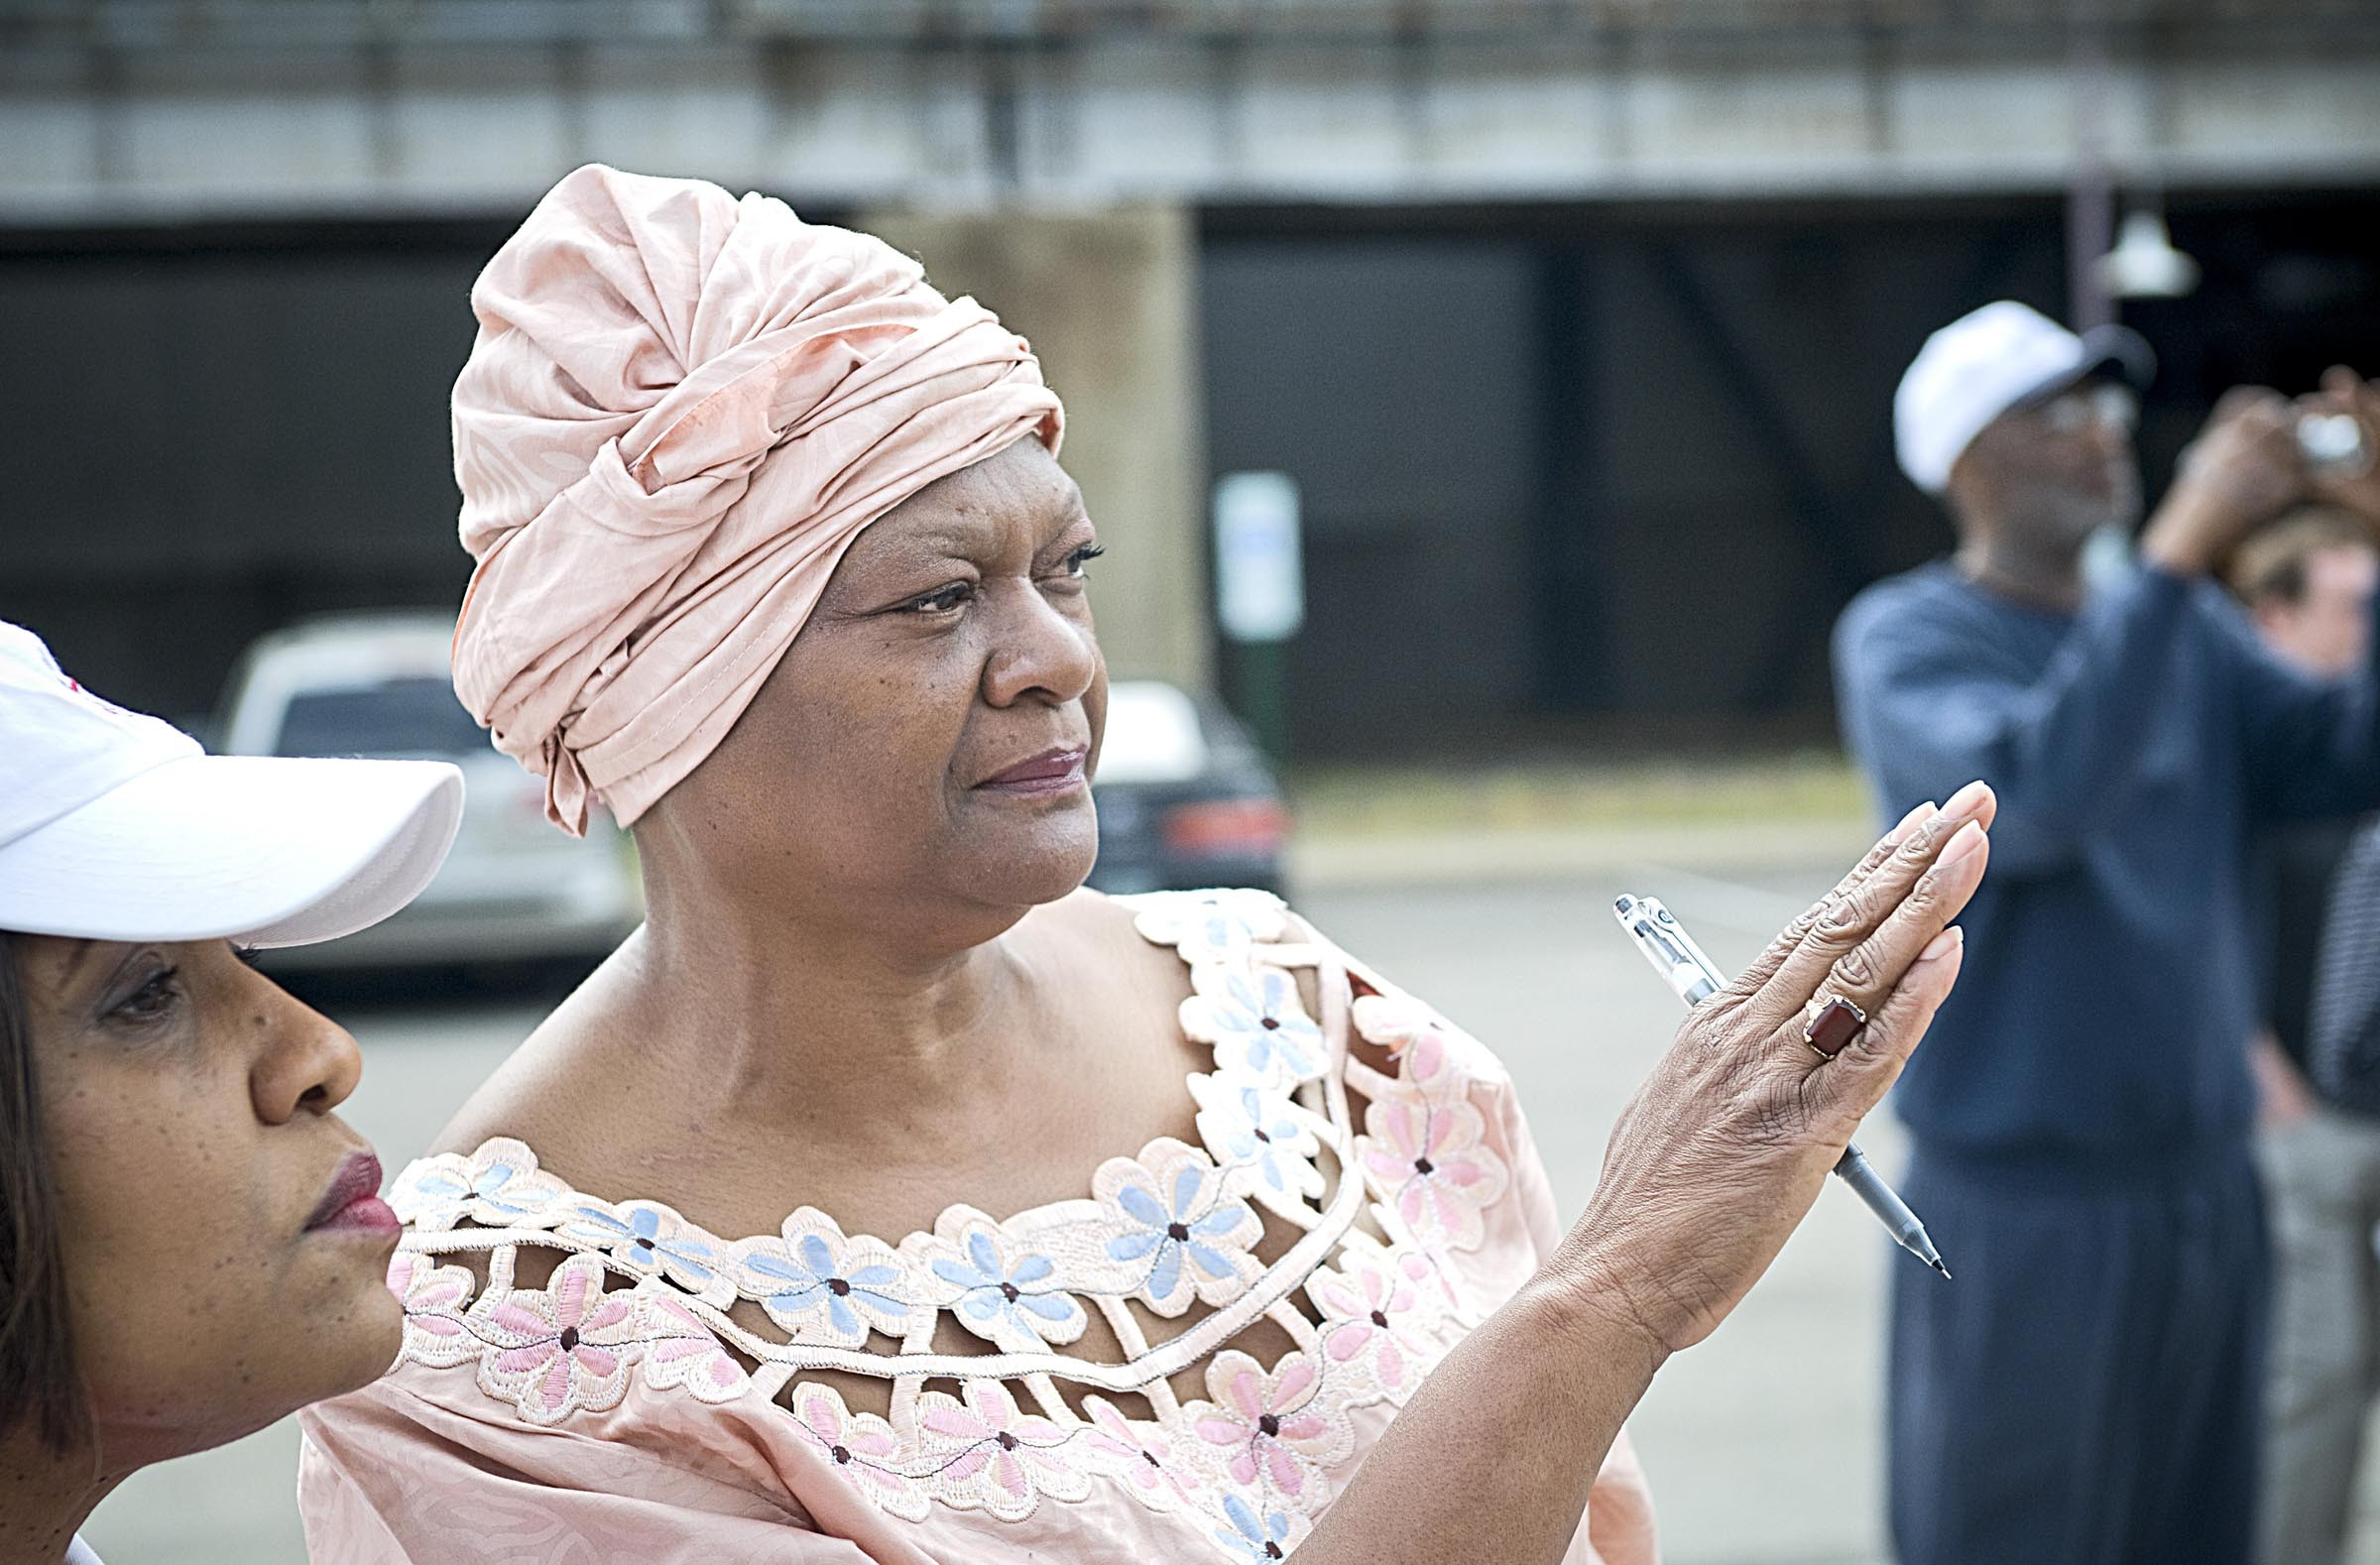 Delegate Delores McQuinn, pictured at the 2010 dedication of the Lumpkin's Jail interpretative site in Shockoe Bottom, says the city's Slave Trail Commission soon will decide whether to take a public position on a new ballpark. - ASH DANIEL